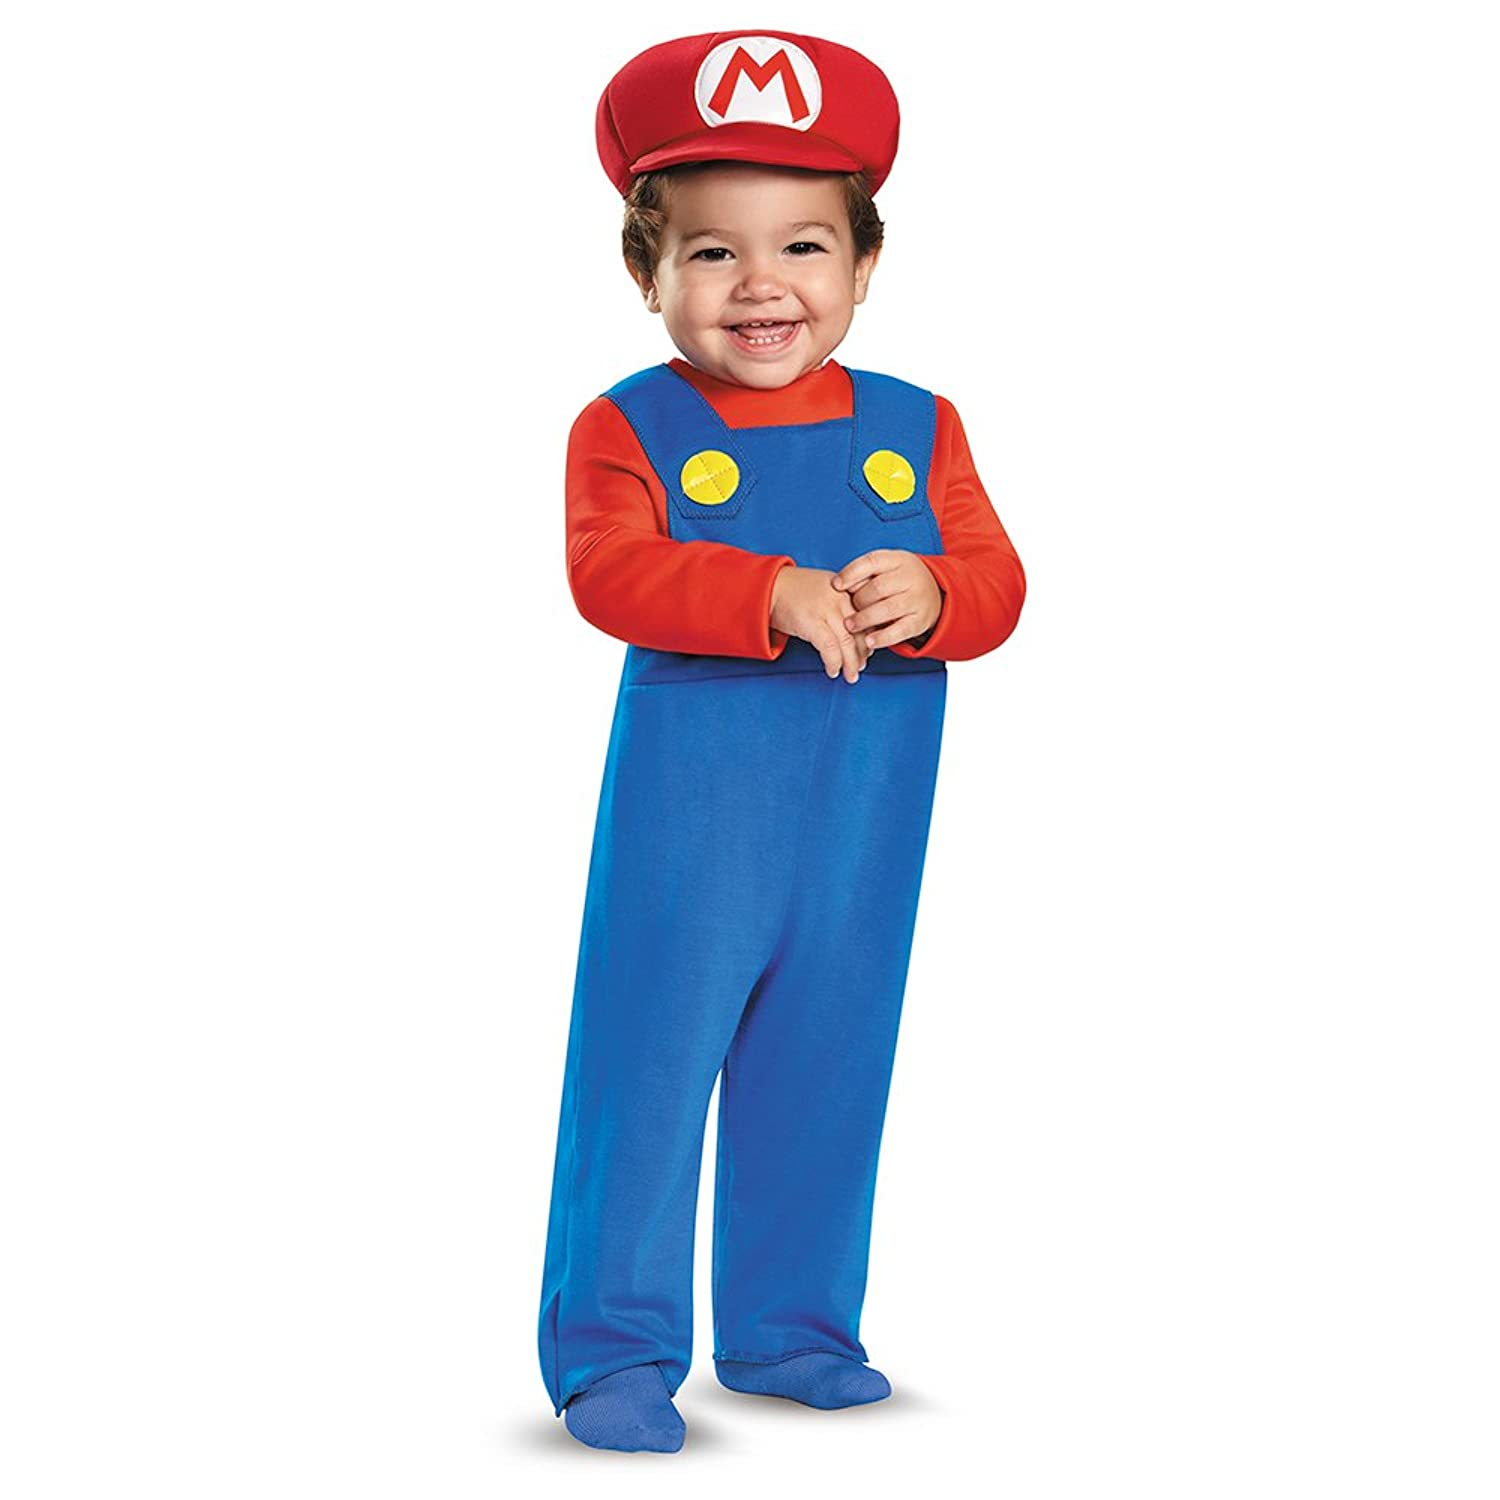 Amazon.com: Disguise Baby Boys' Mario Infant Costume, Red, 12-18 ...